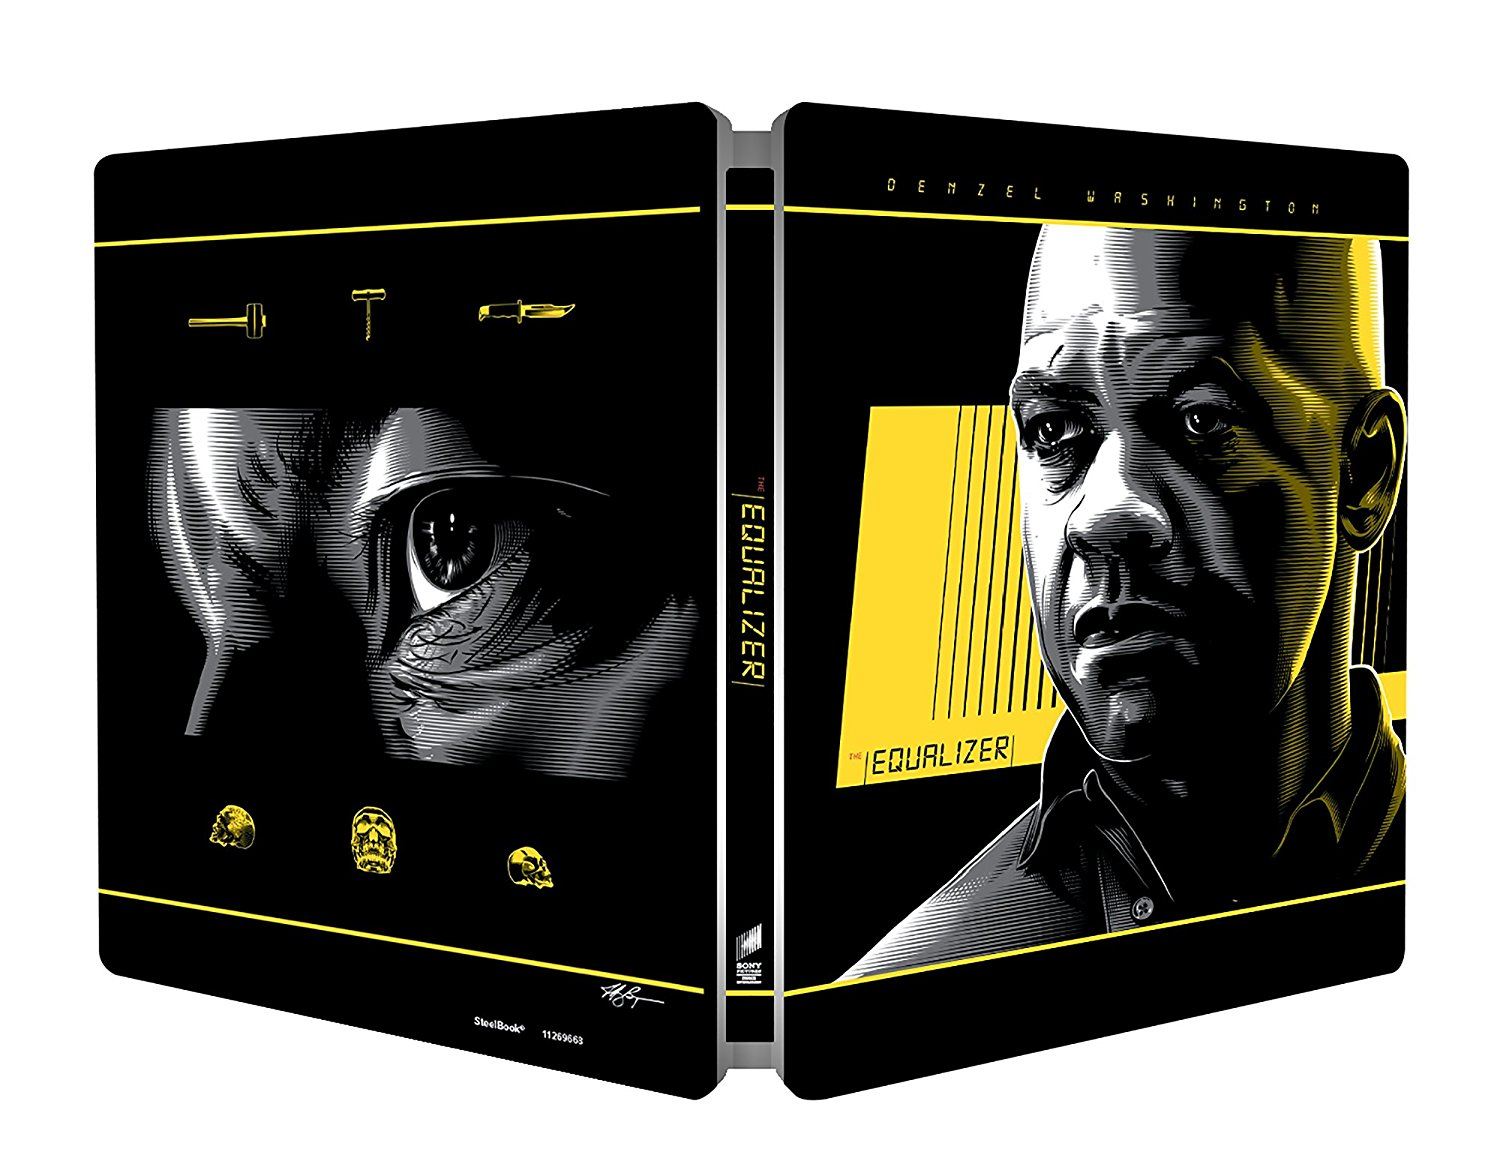 Equalizer steelbook 2